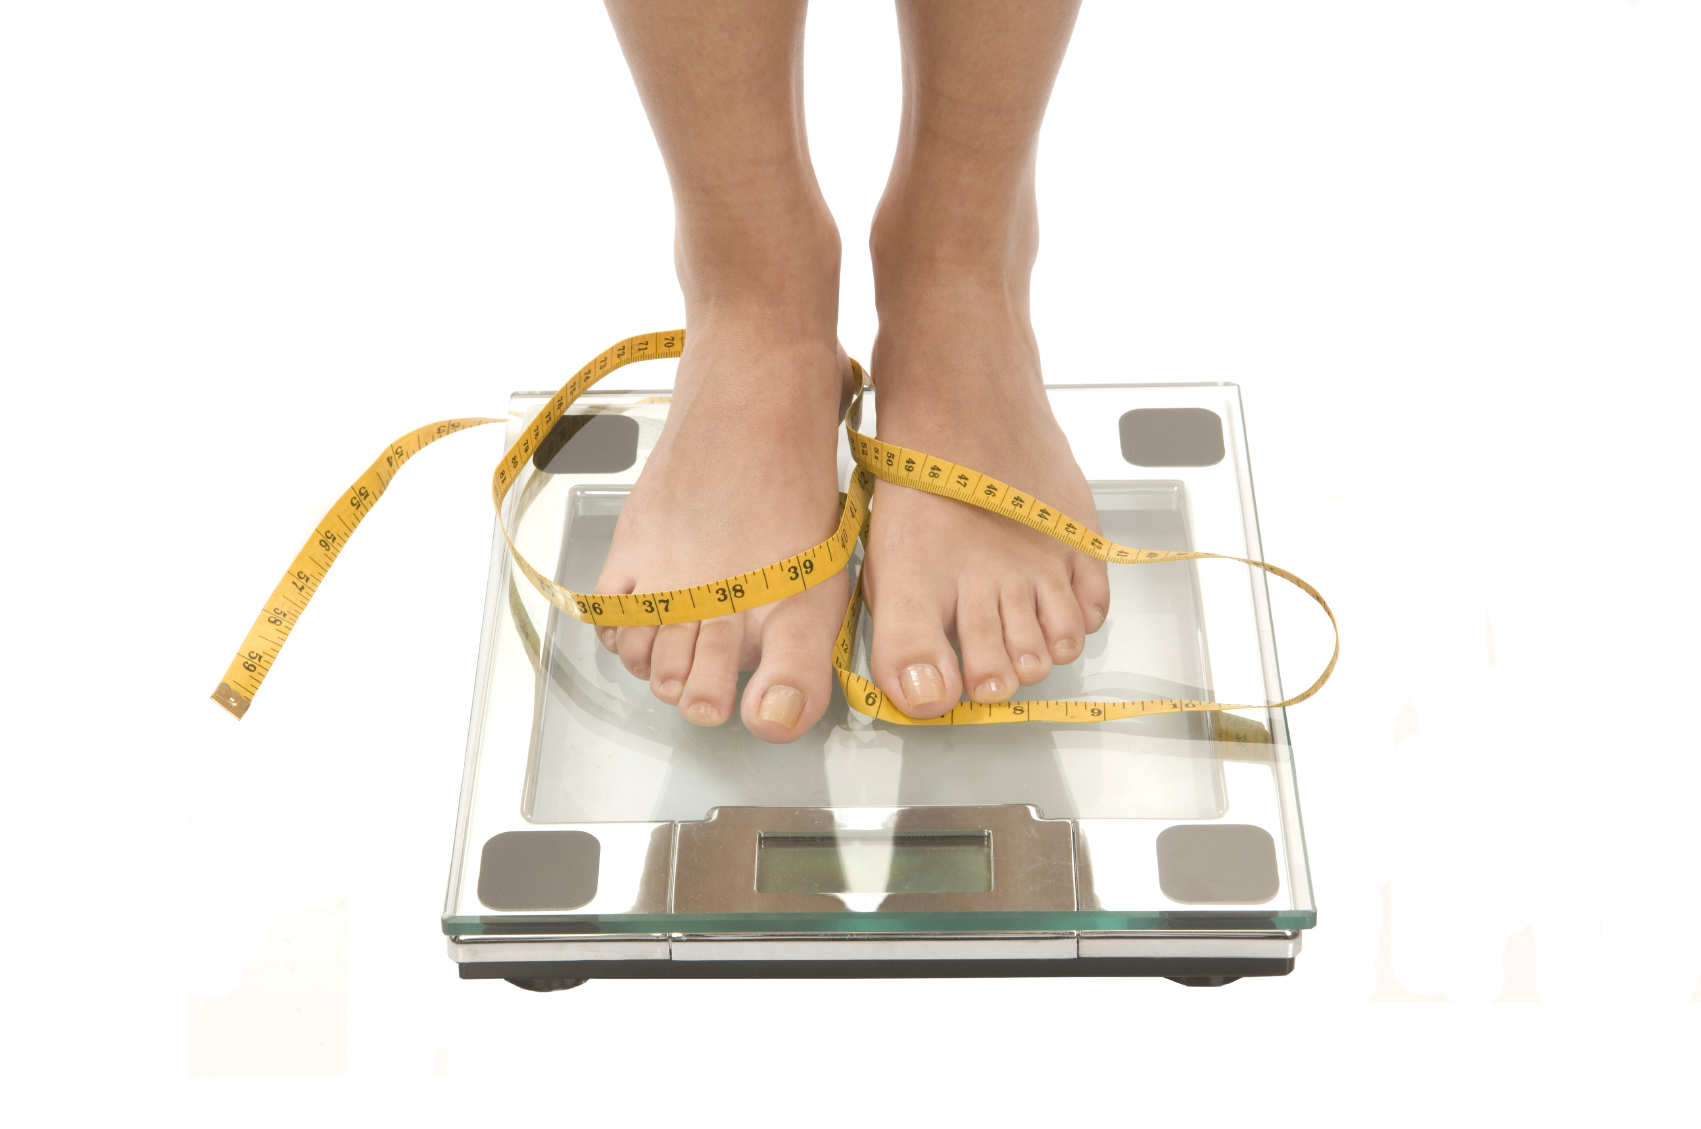 What is a good food to eat to lose weight fast image 6